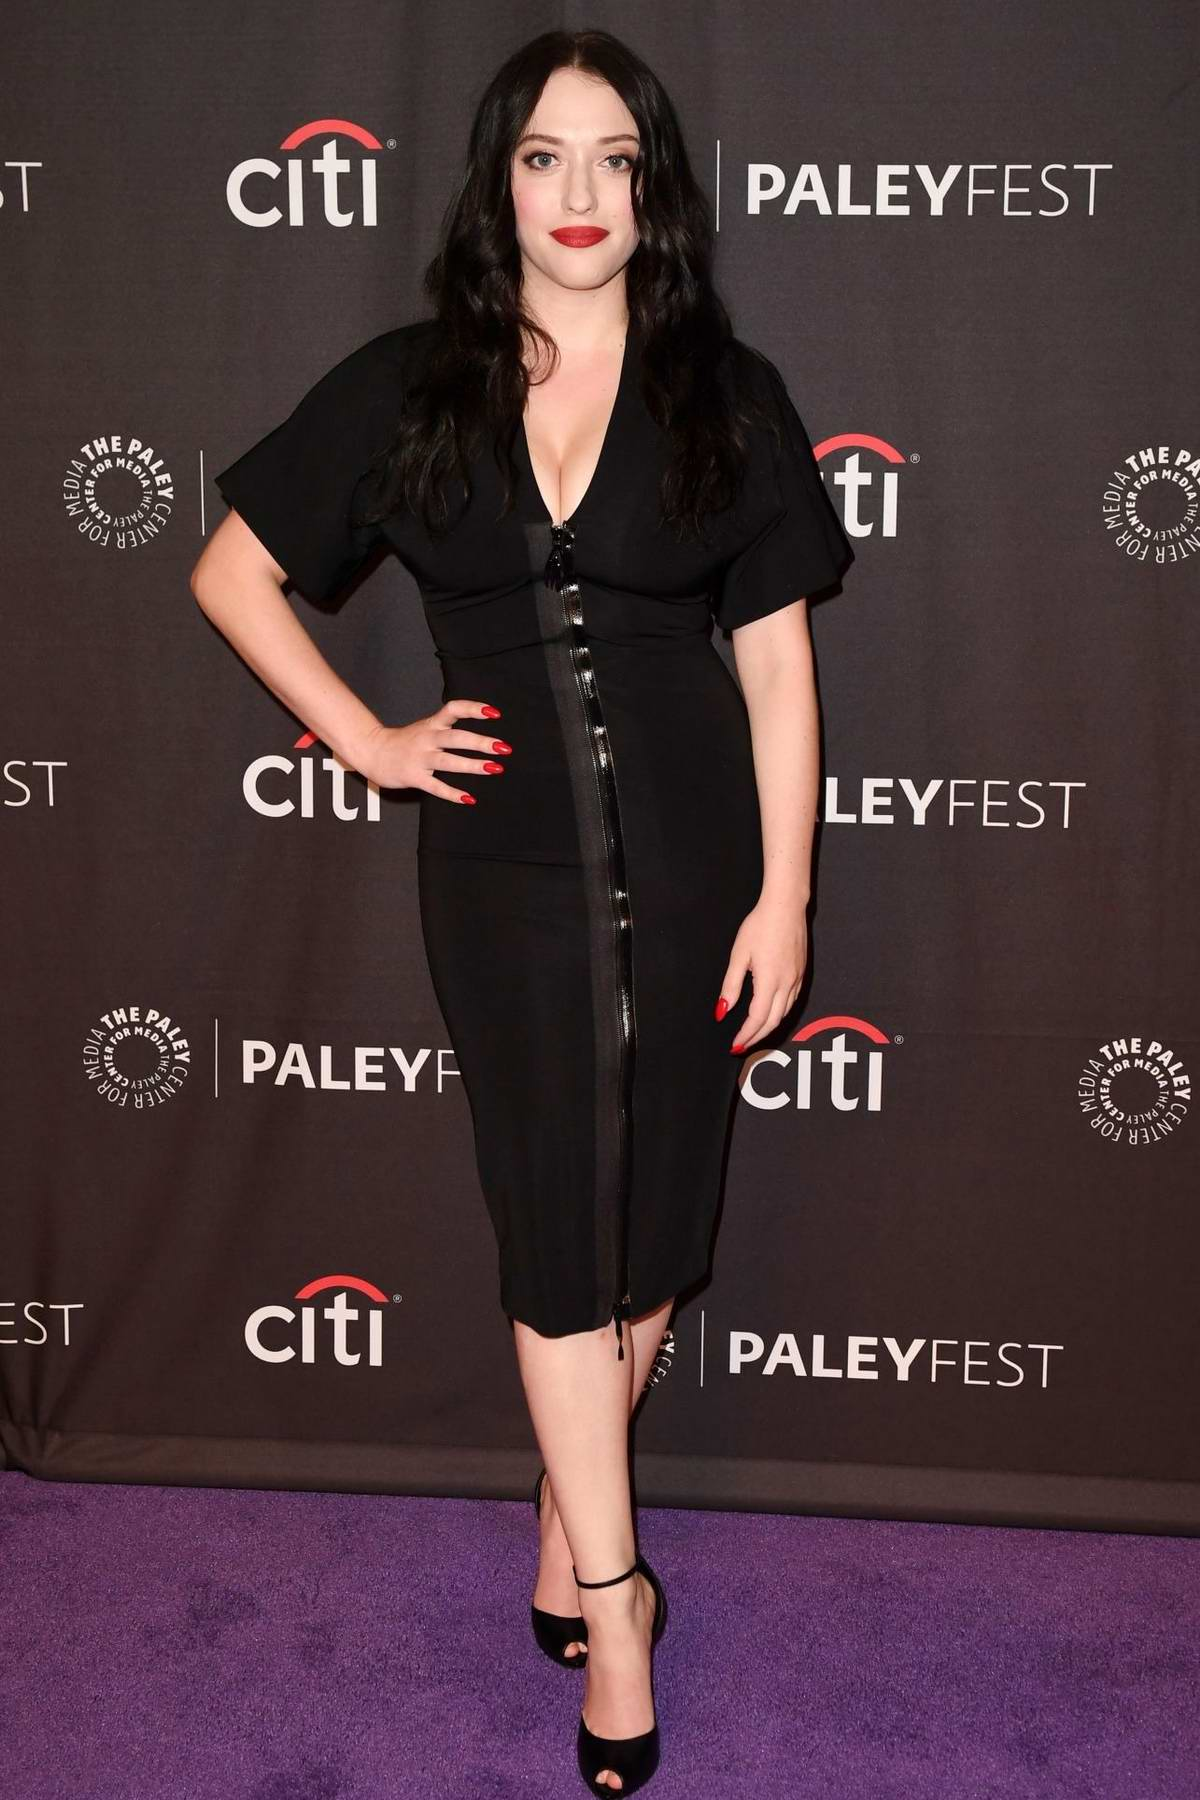 Kat Dennings attends Hulu's 'Dollface' presentation at PaleyFest in Beverly Hills, Los Angeles